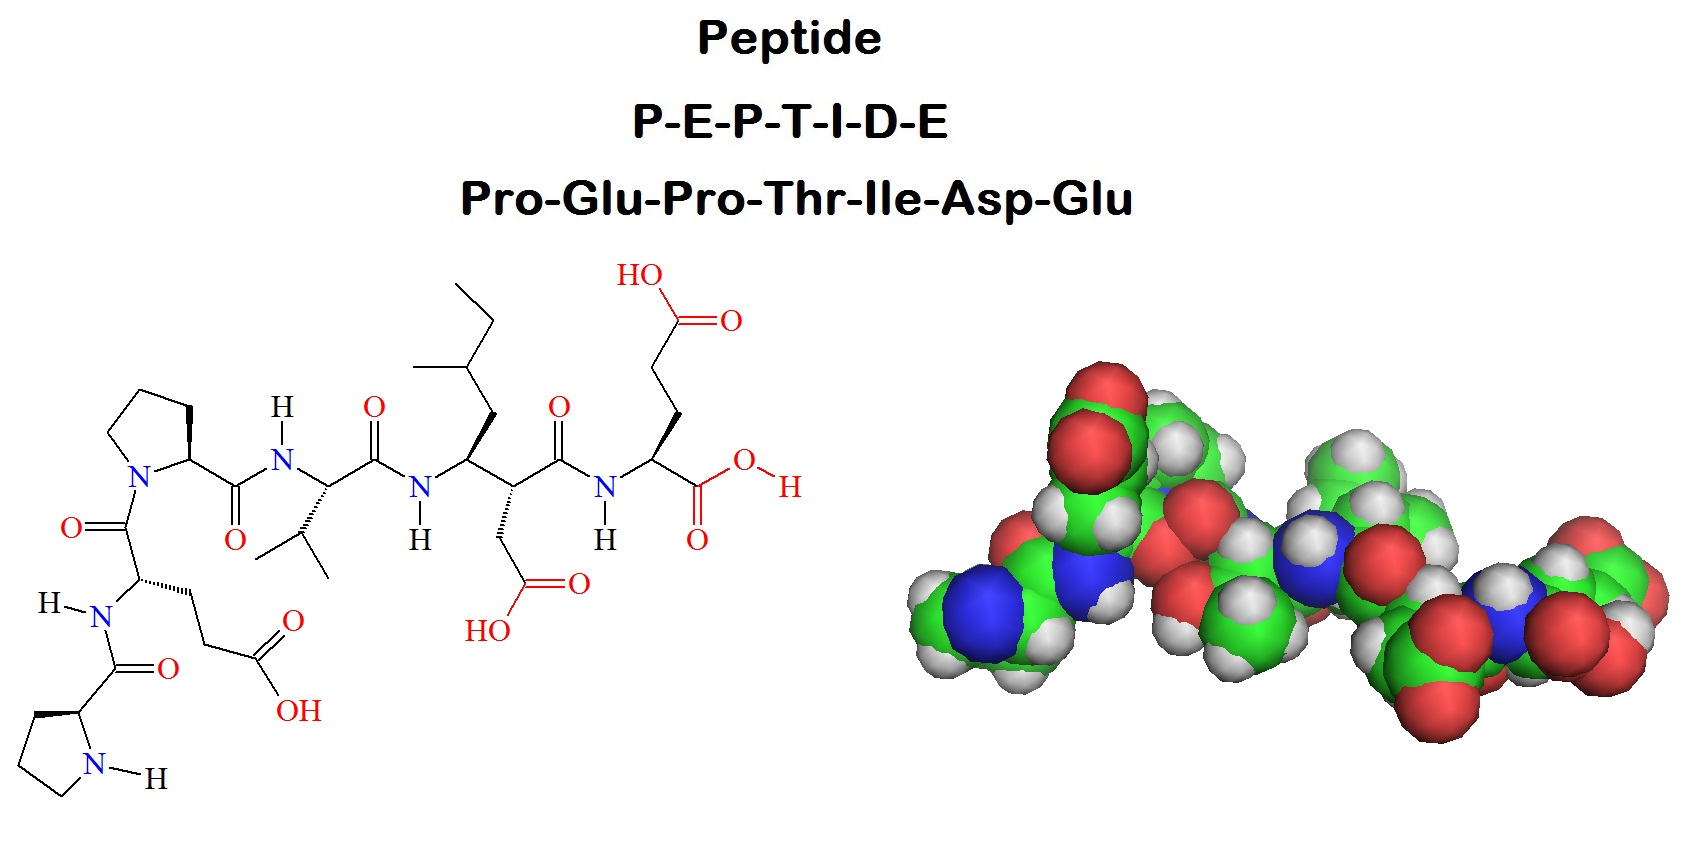 Image of Peptide under research